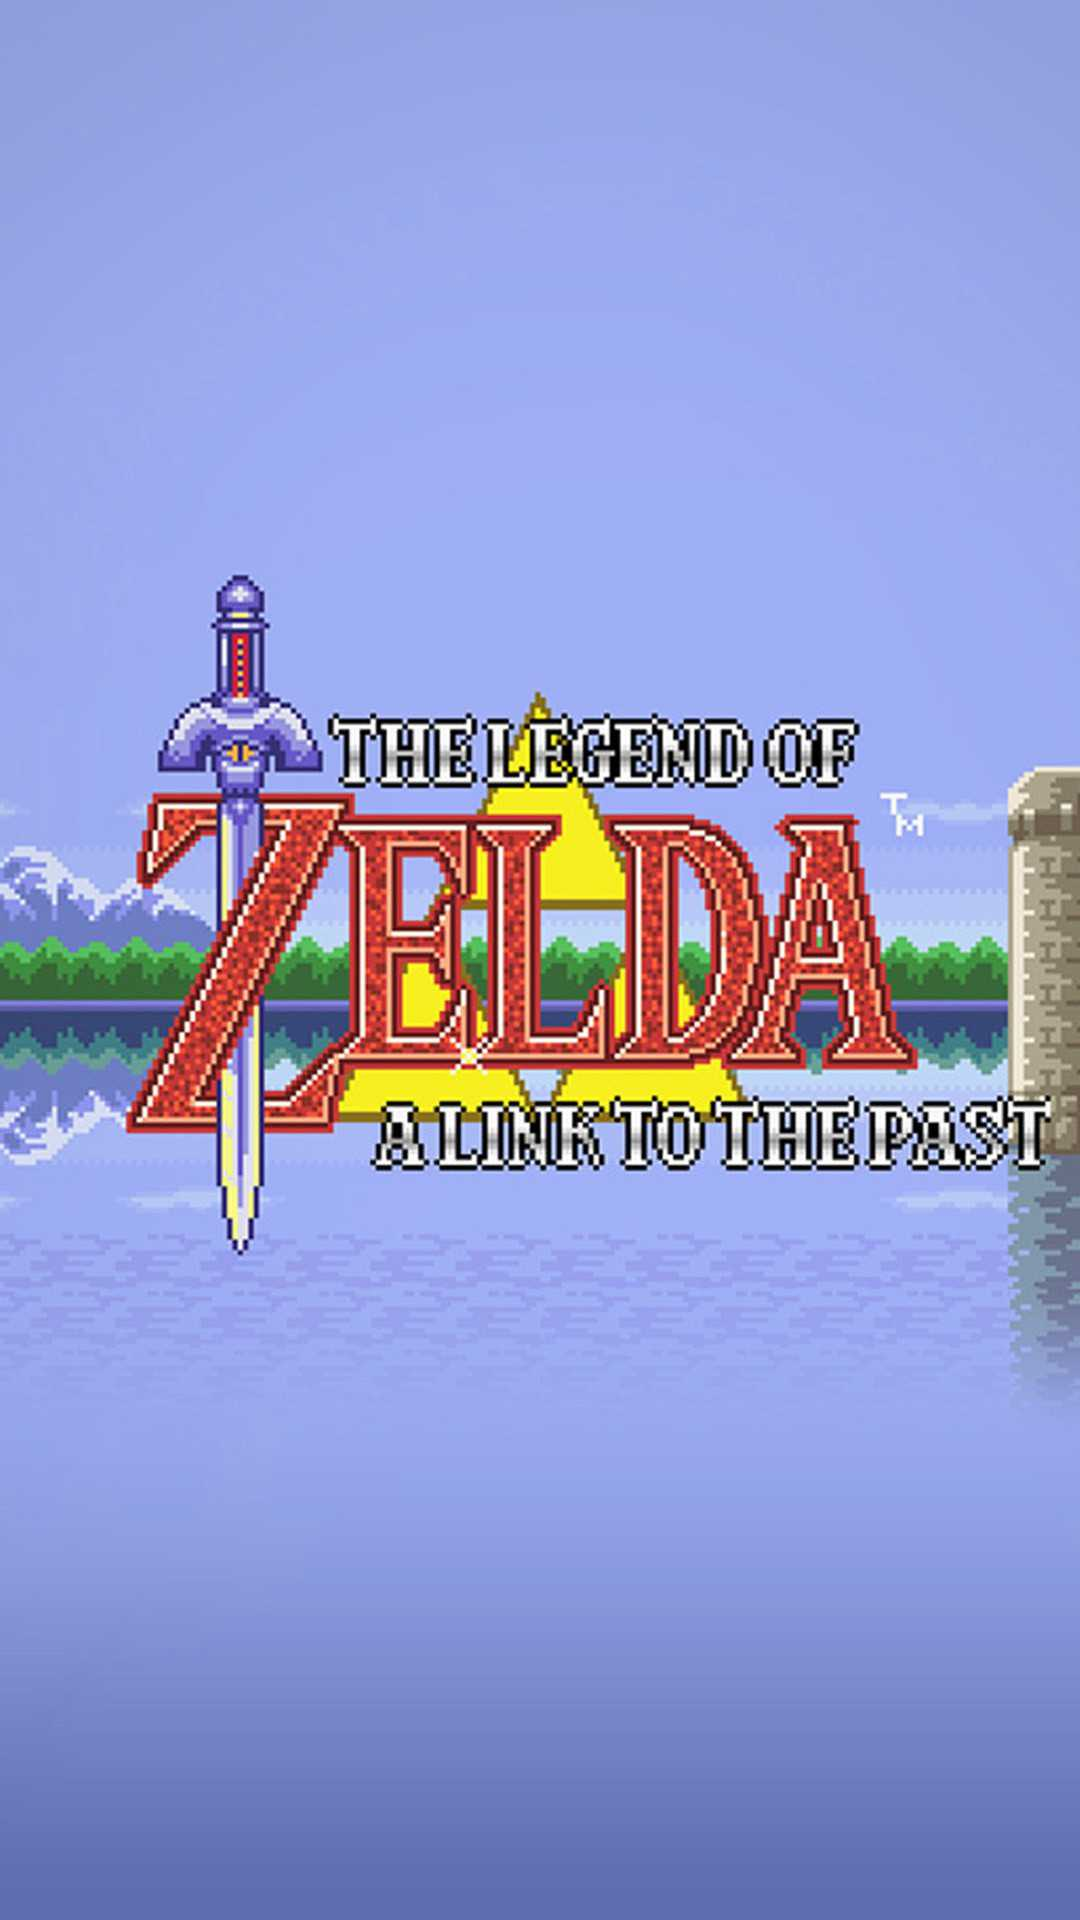 Download Zelda iPhone 6 Plus Wallpapers 73+ on HD Wallpapers Page